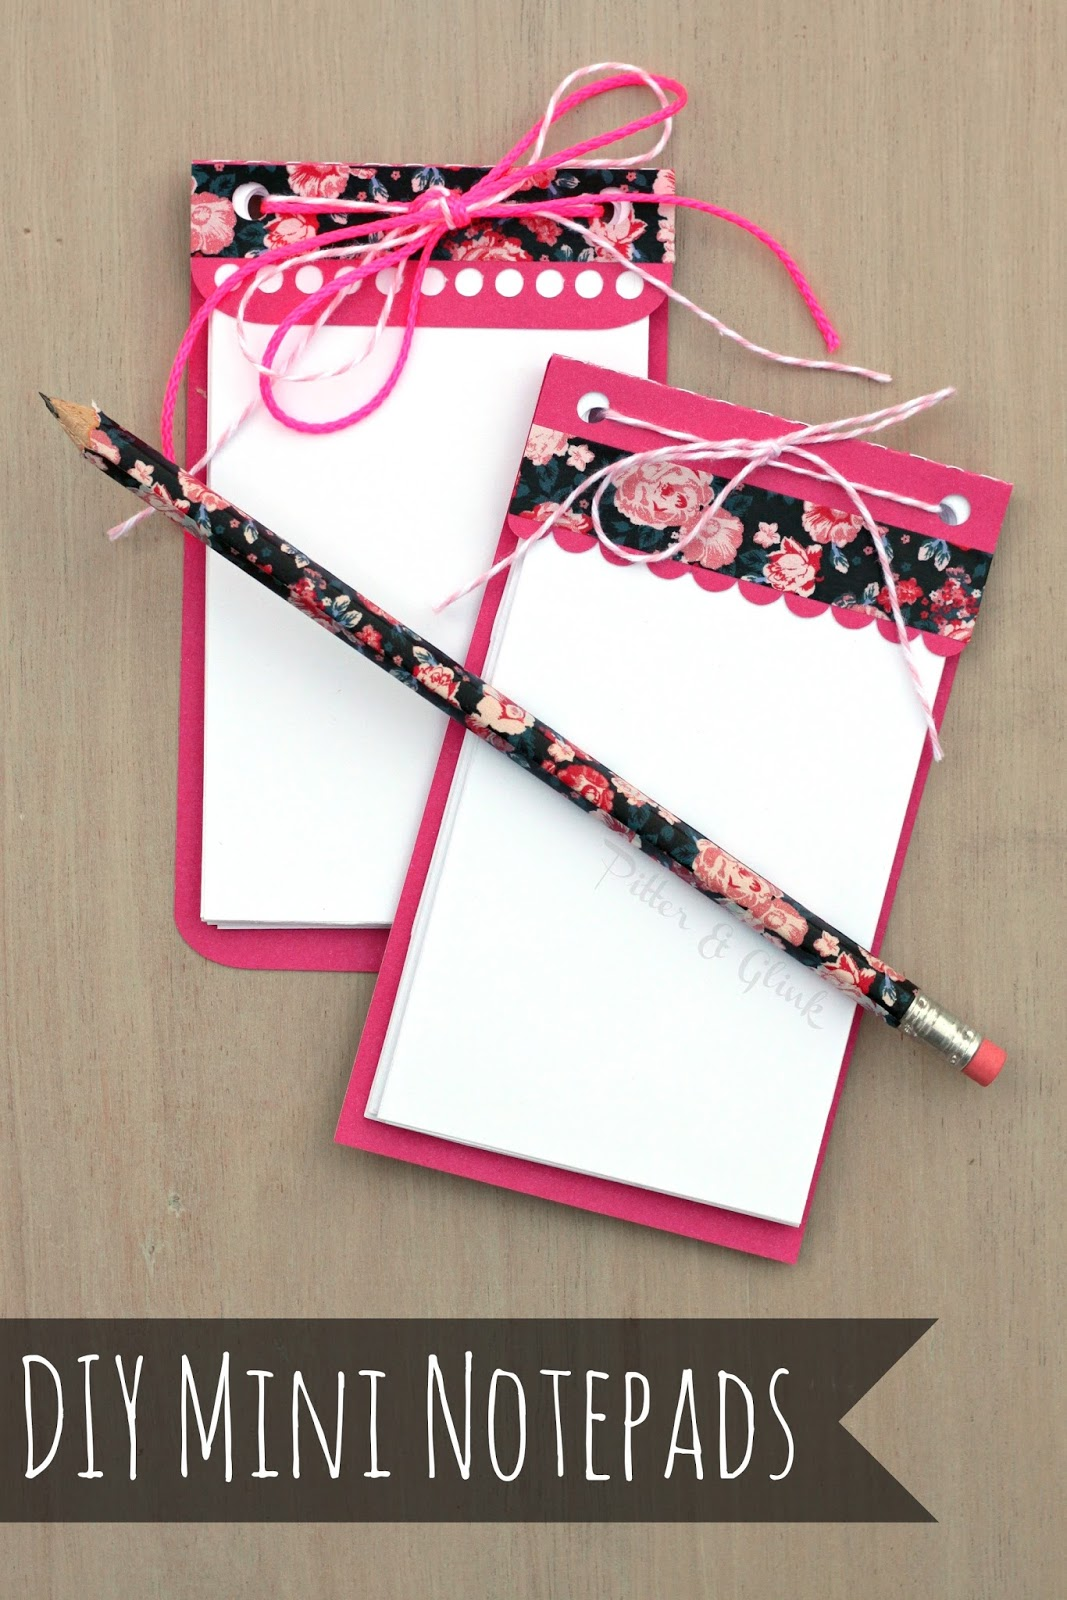 DIY Mini Notepads with Free Silhouette Cut File via pitterandglink.com